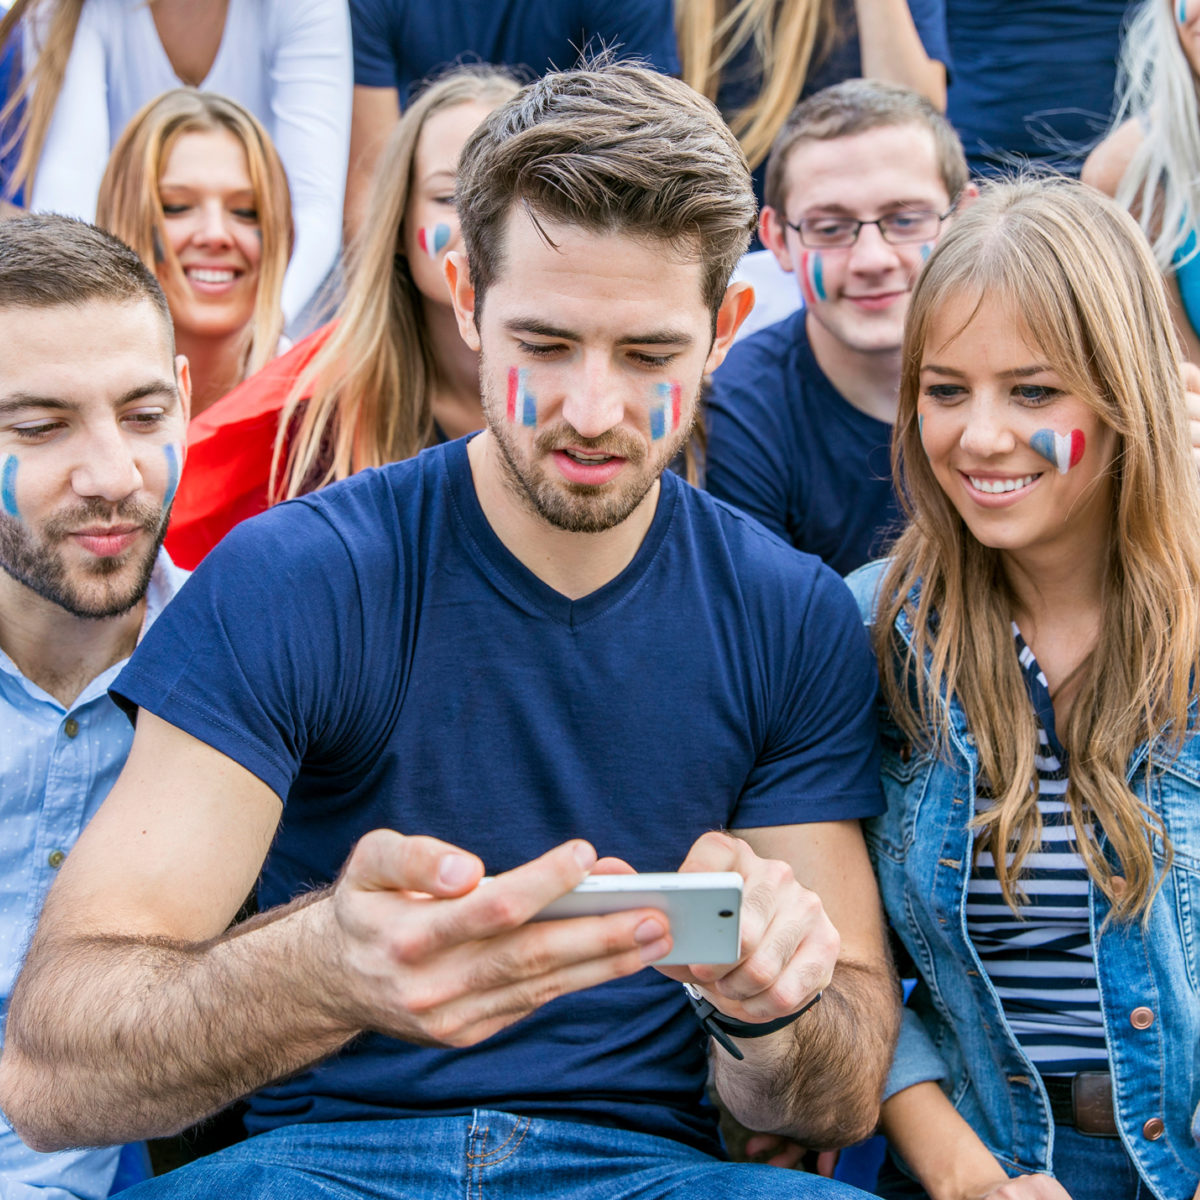 Group of soccer fans text messaging